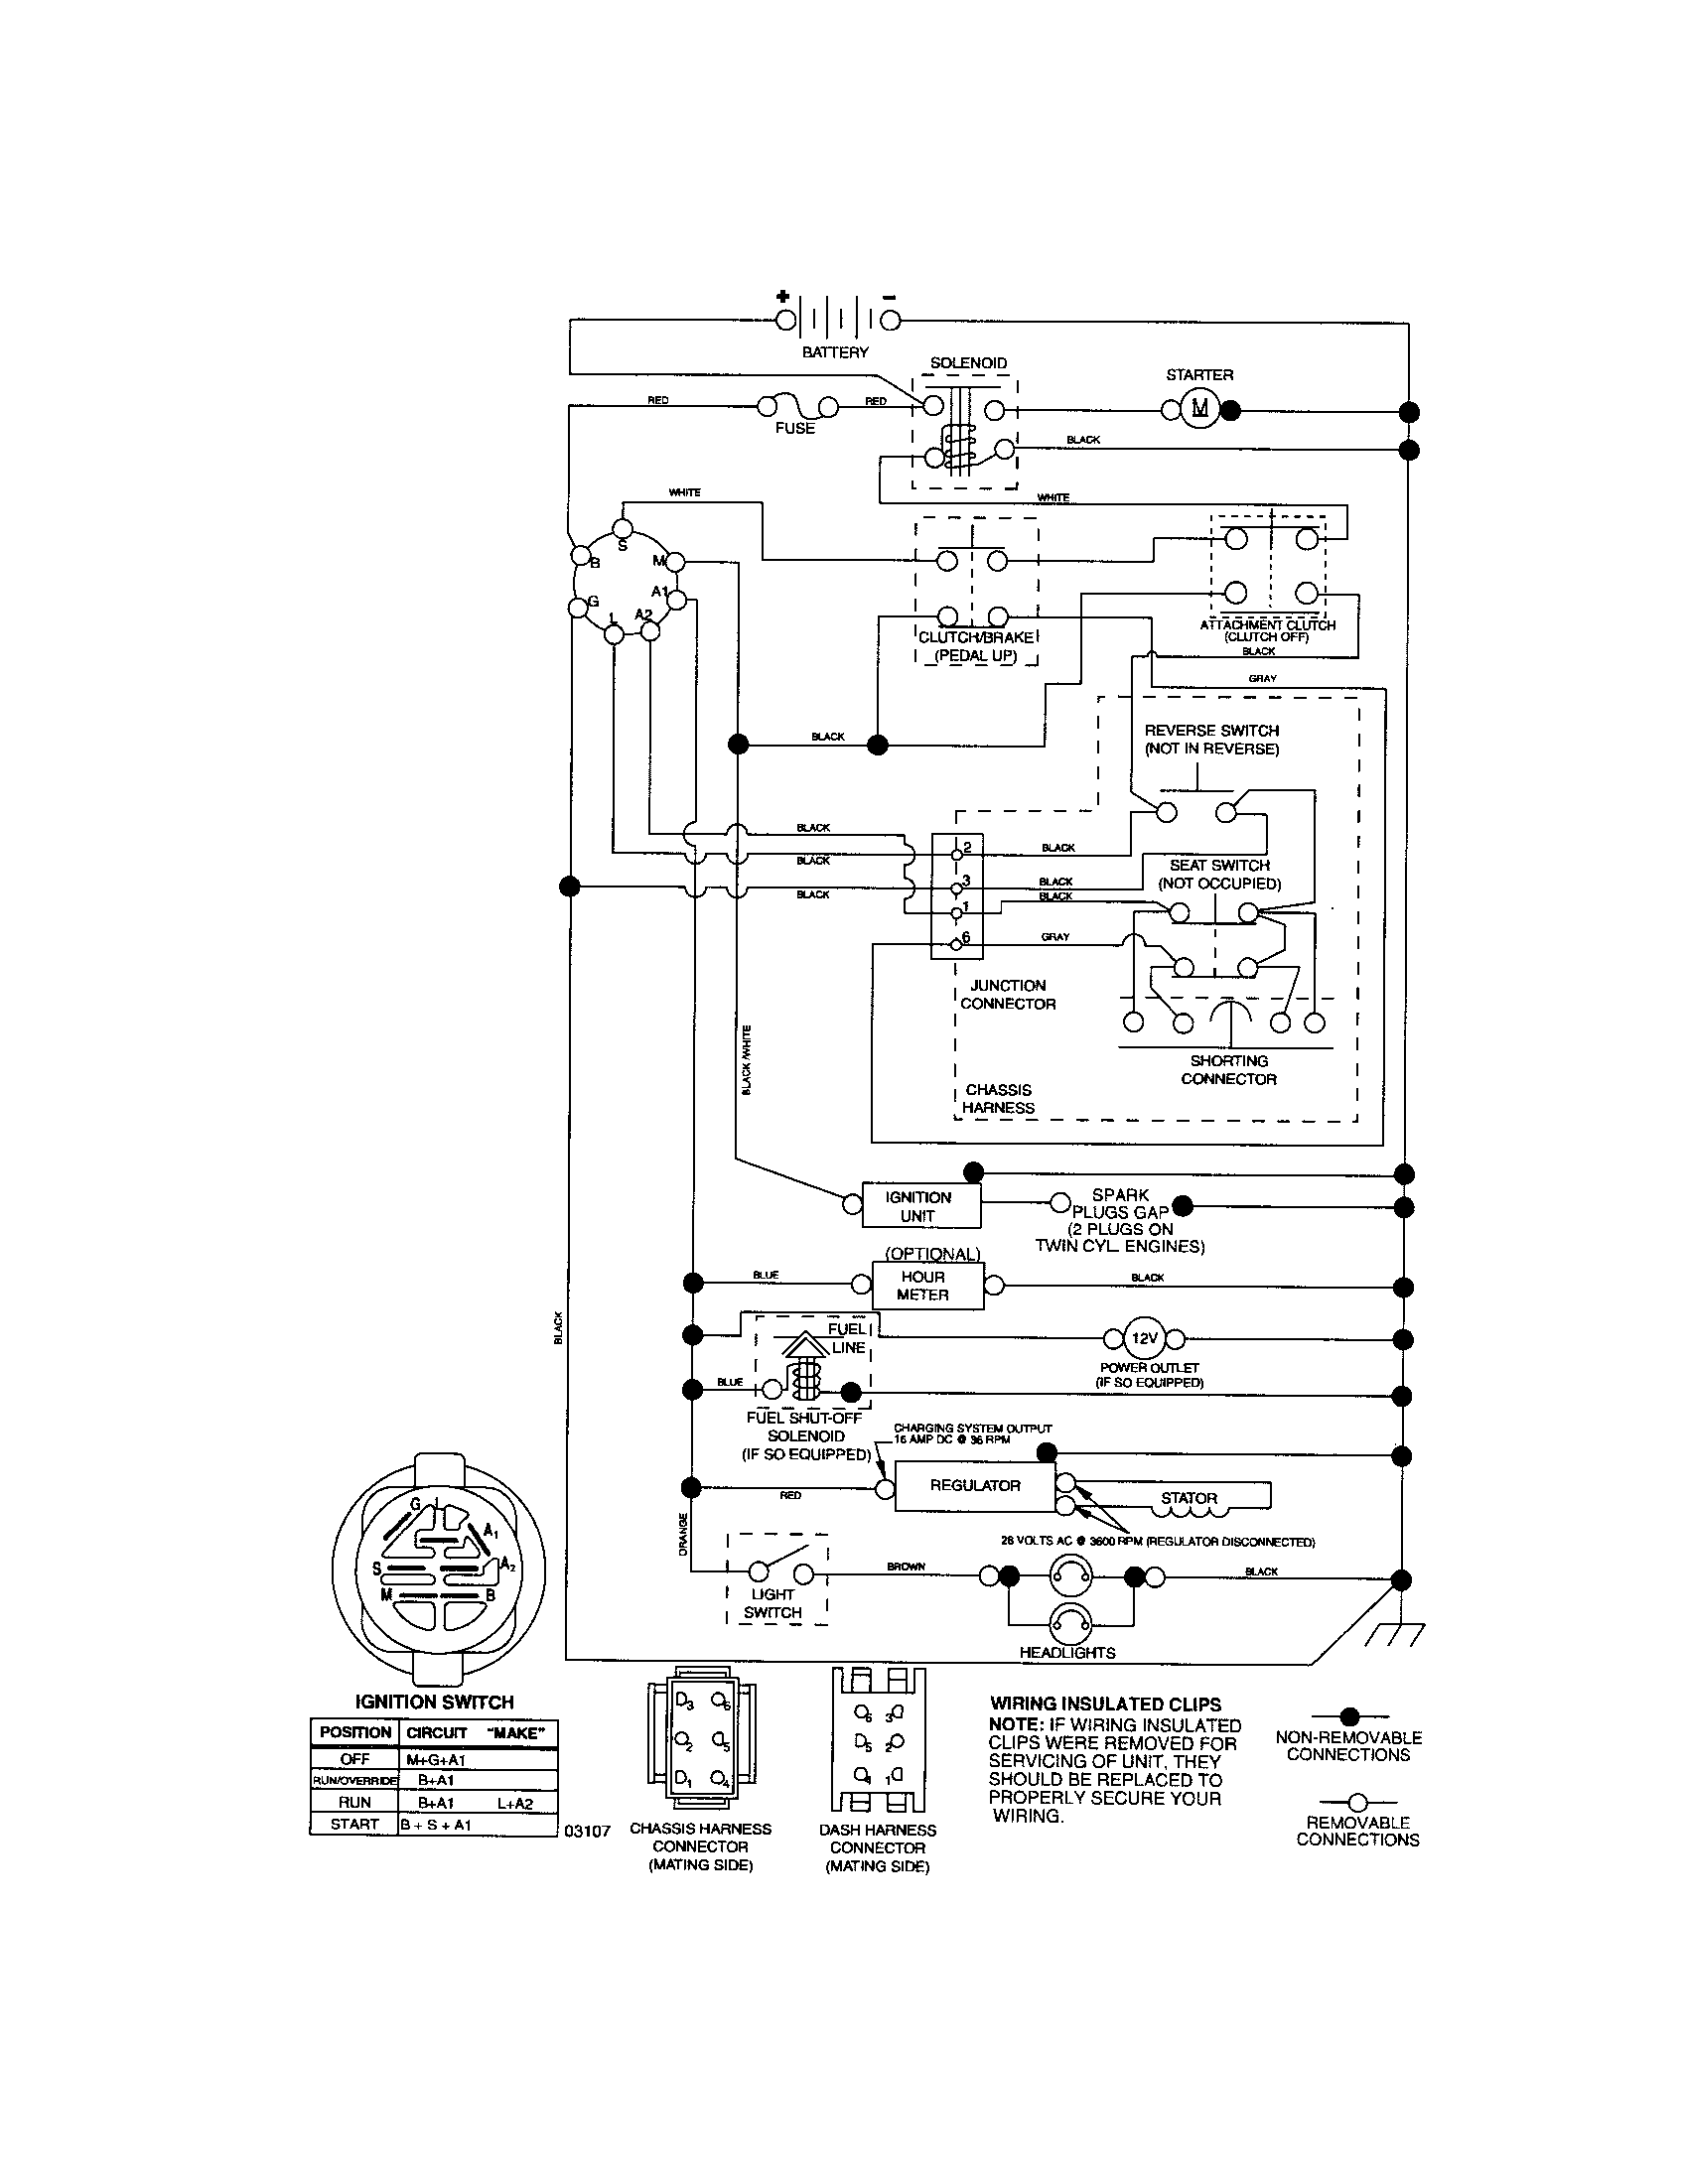 mower wiring schematic wiring diagram val 1 2 hp murray lawn mower wiring diagram [ 1696 x 2200 Pixel ]